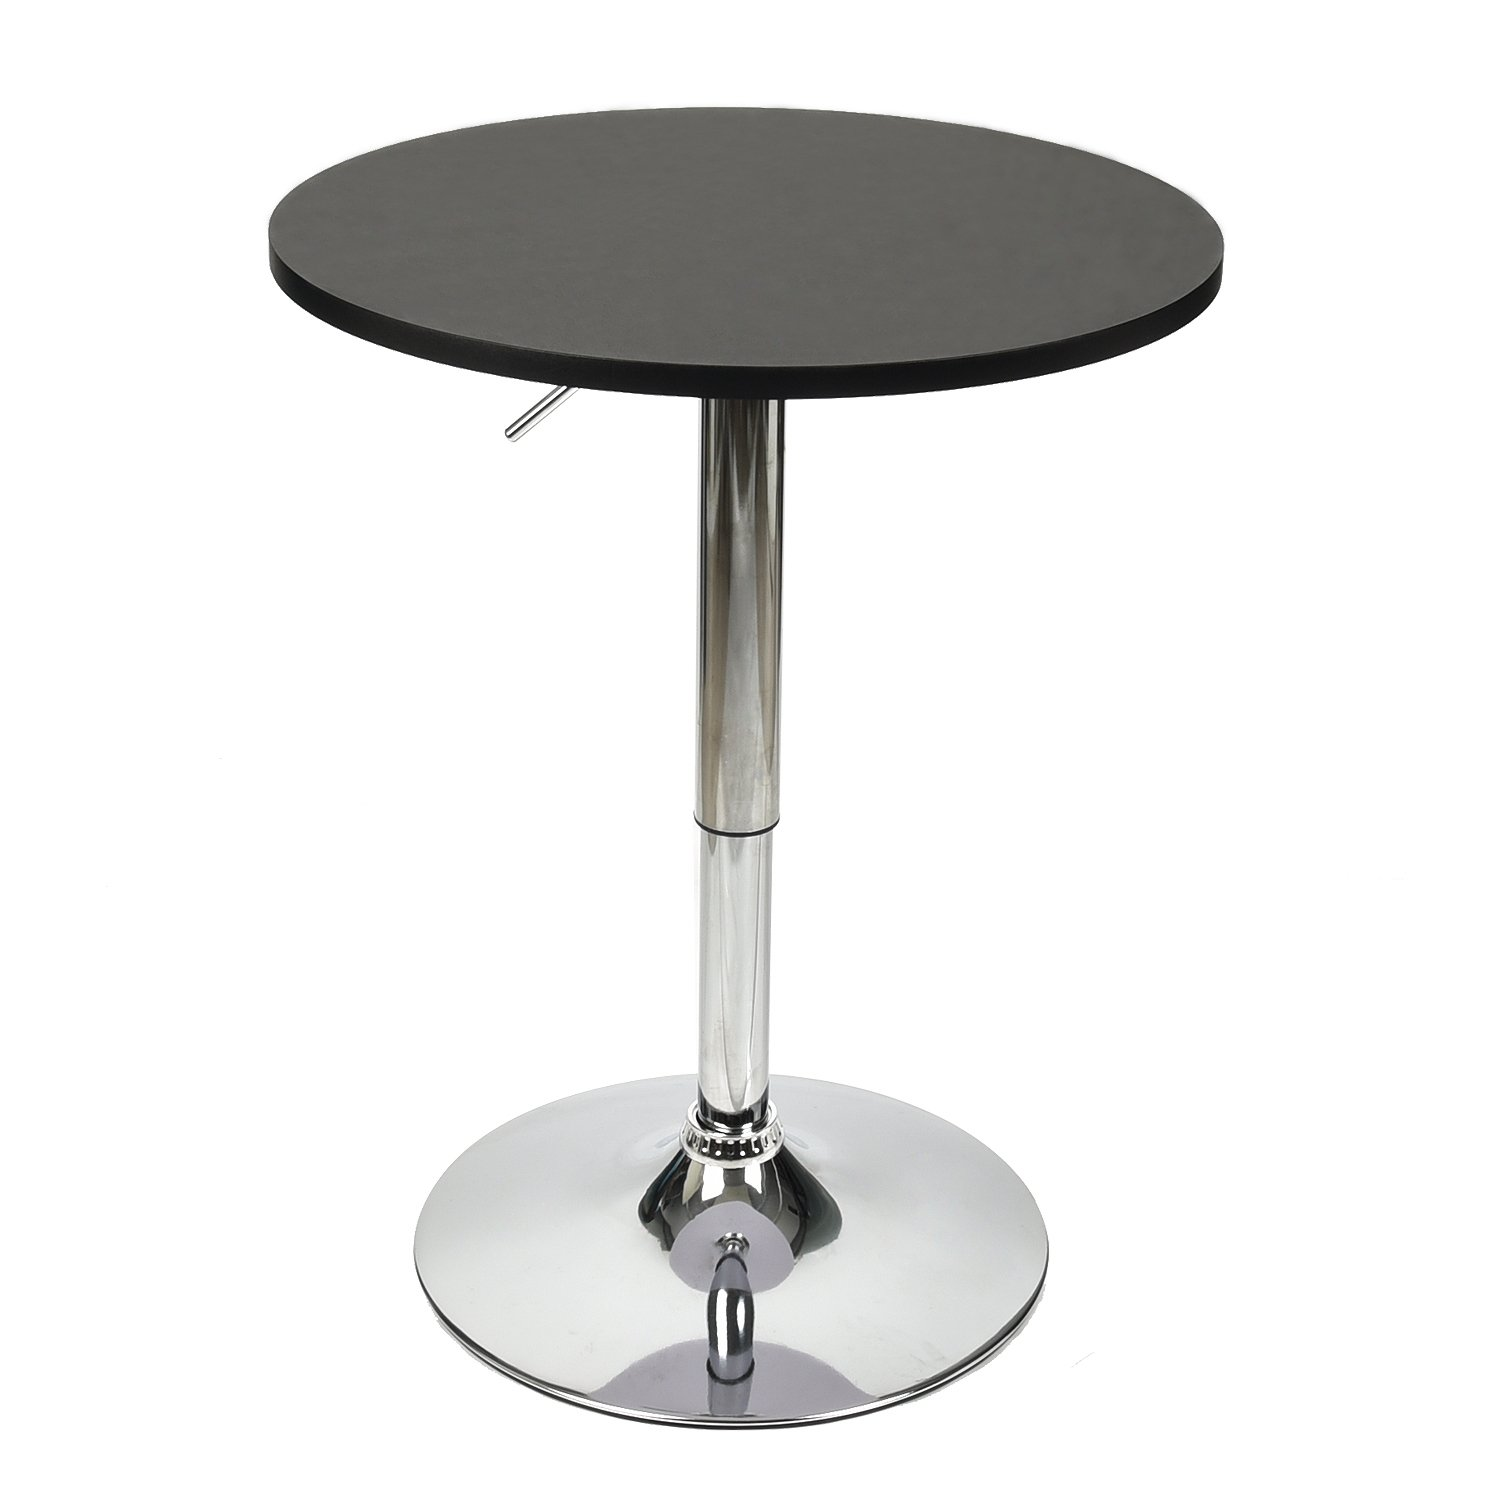 PULUOMIS 35 Inches Height Pub Table Round Black Mdf Top, with Chrome Leg And Base